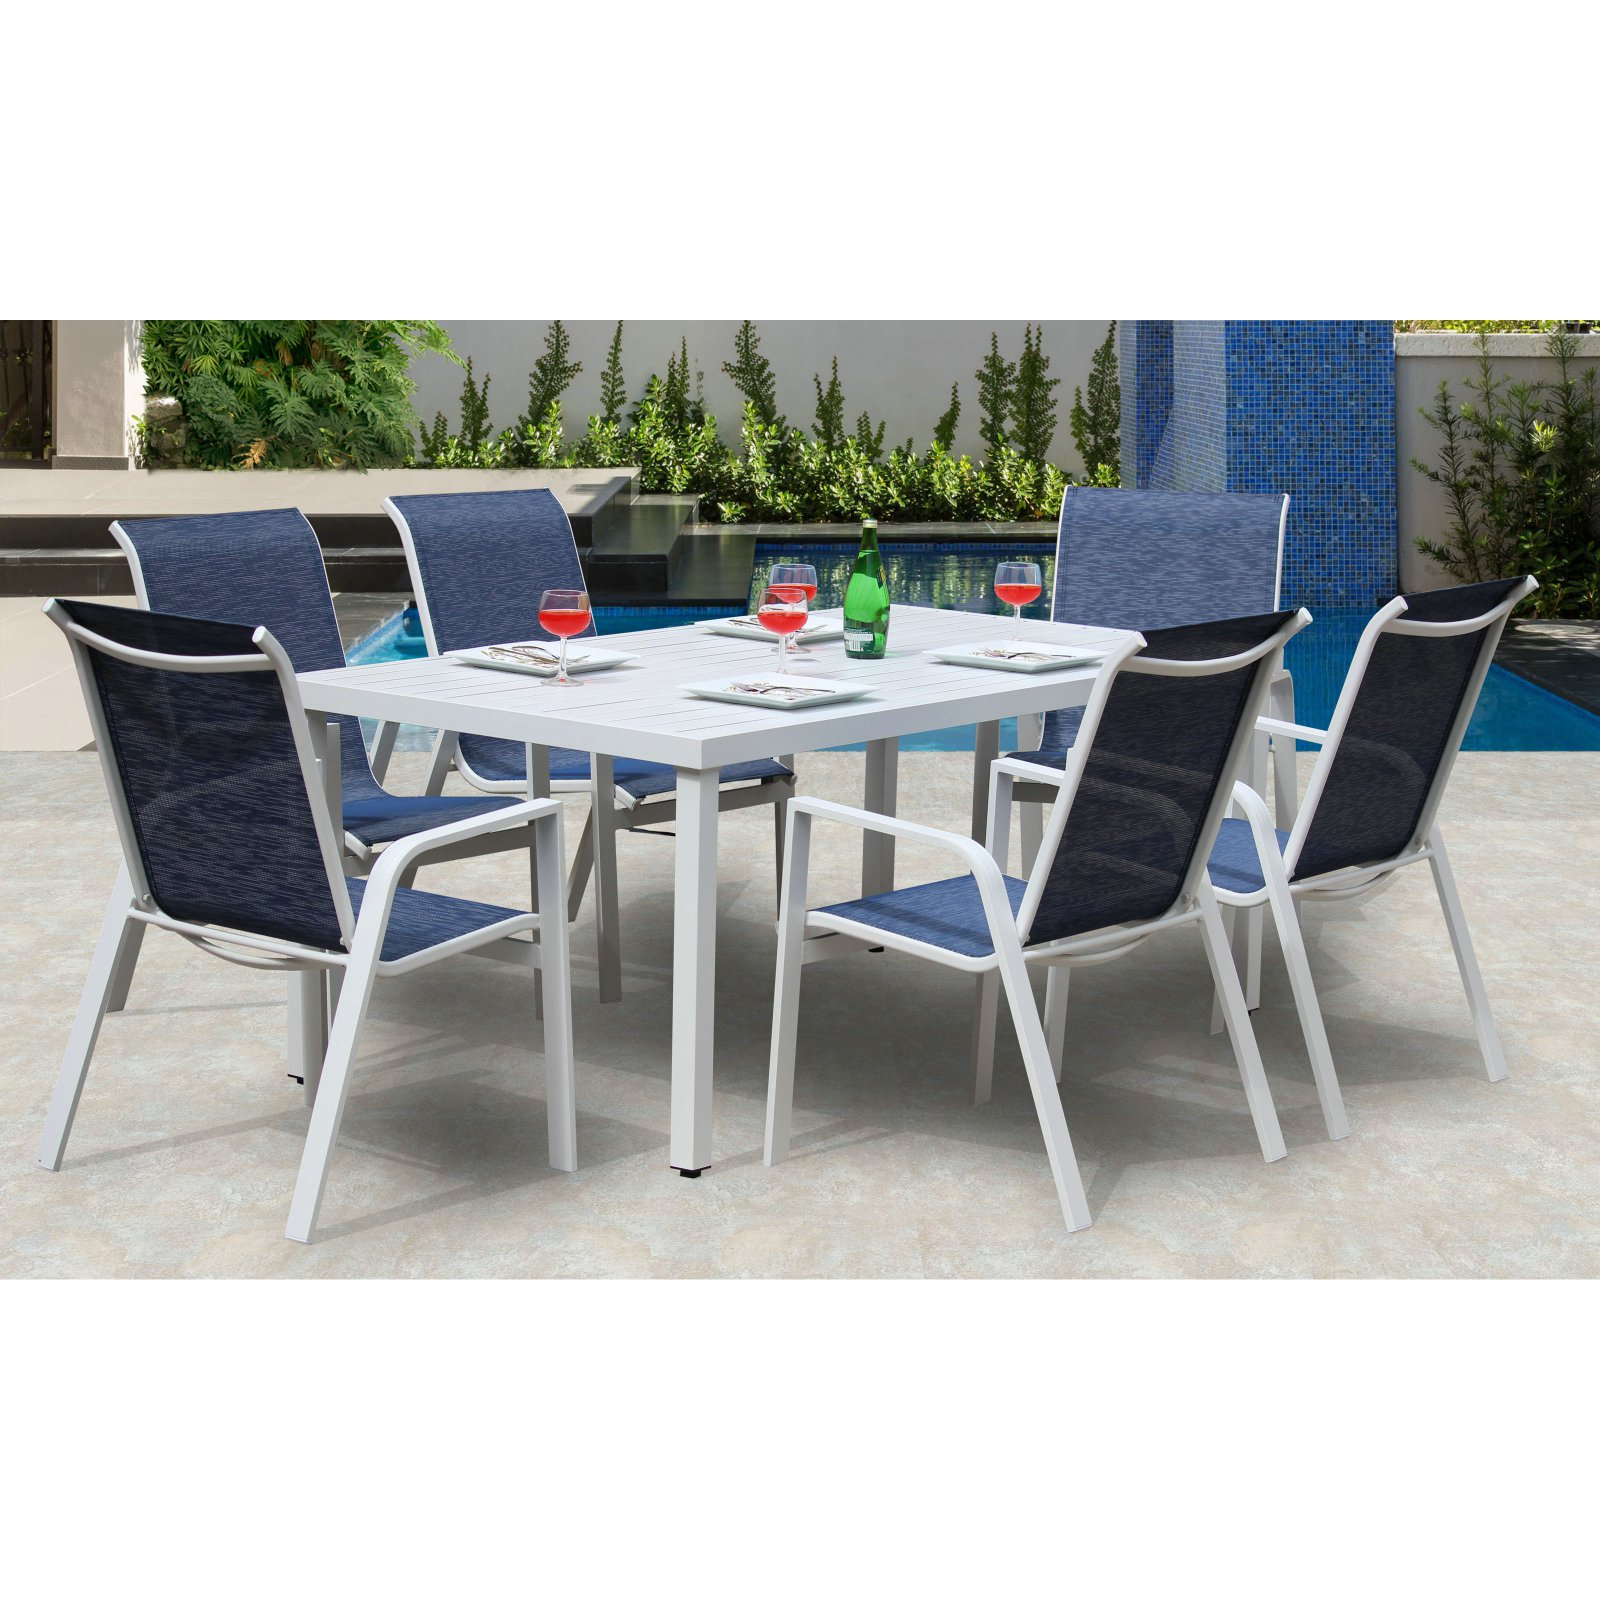 Bellini Home and Gardens Hampton Aluminum 7 Piece Patio Dining Set